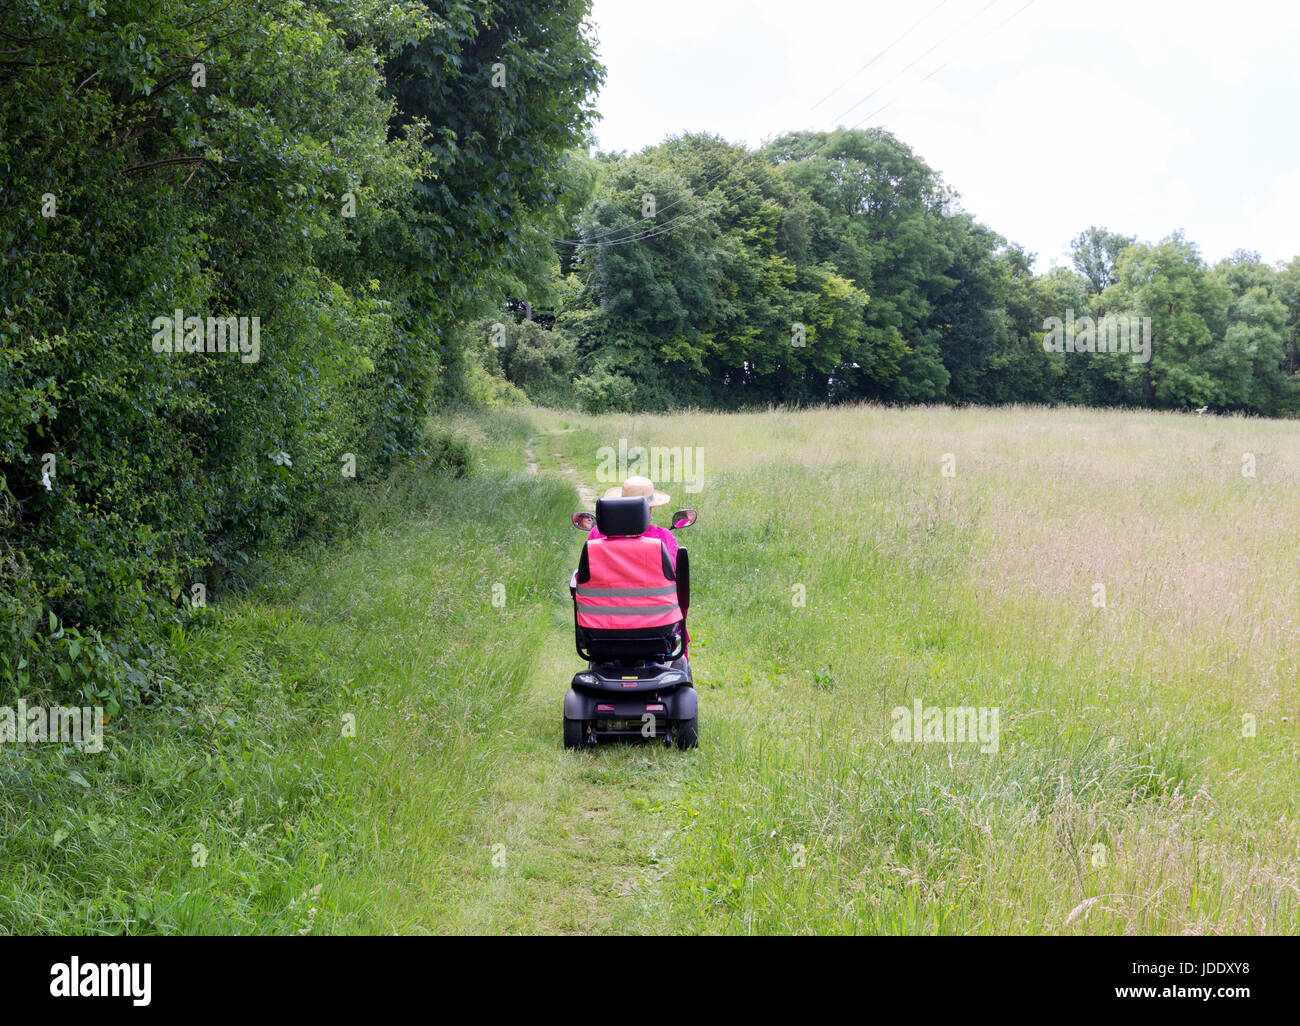 A woman riding a mobility scooter giving  disabled access to the countryside, Kent, England UK - Stock Image